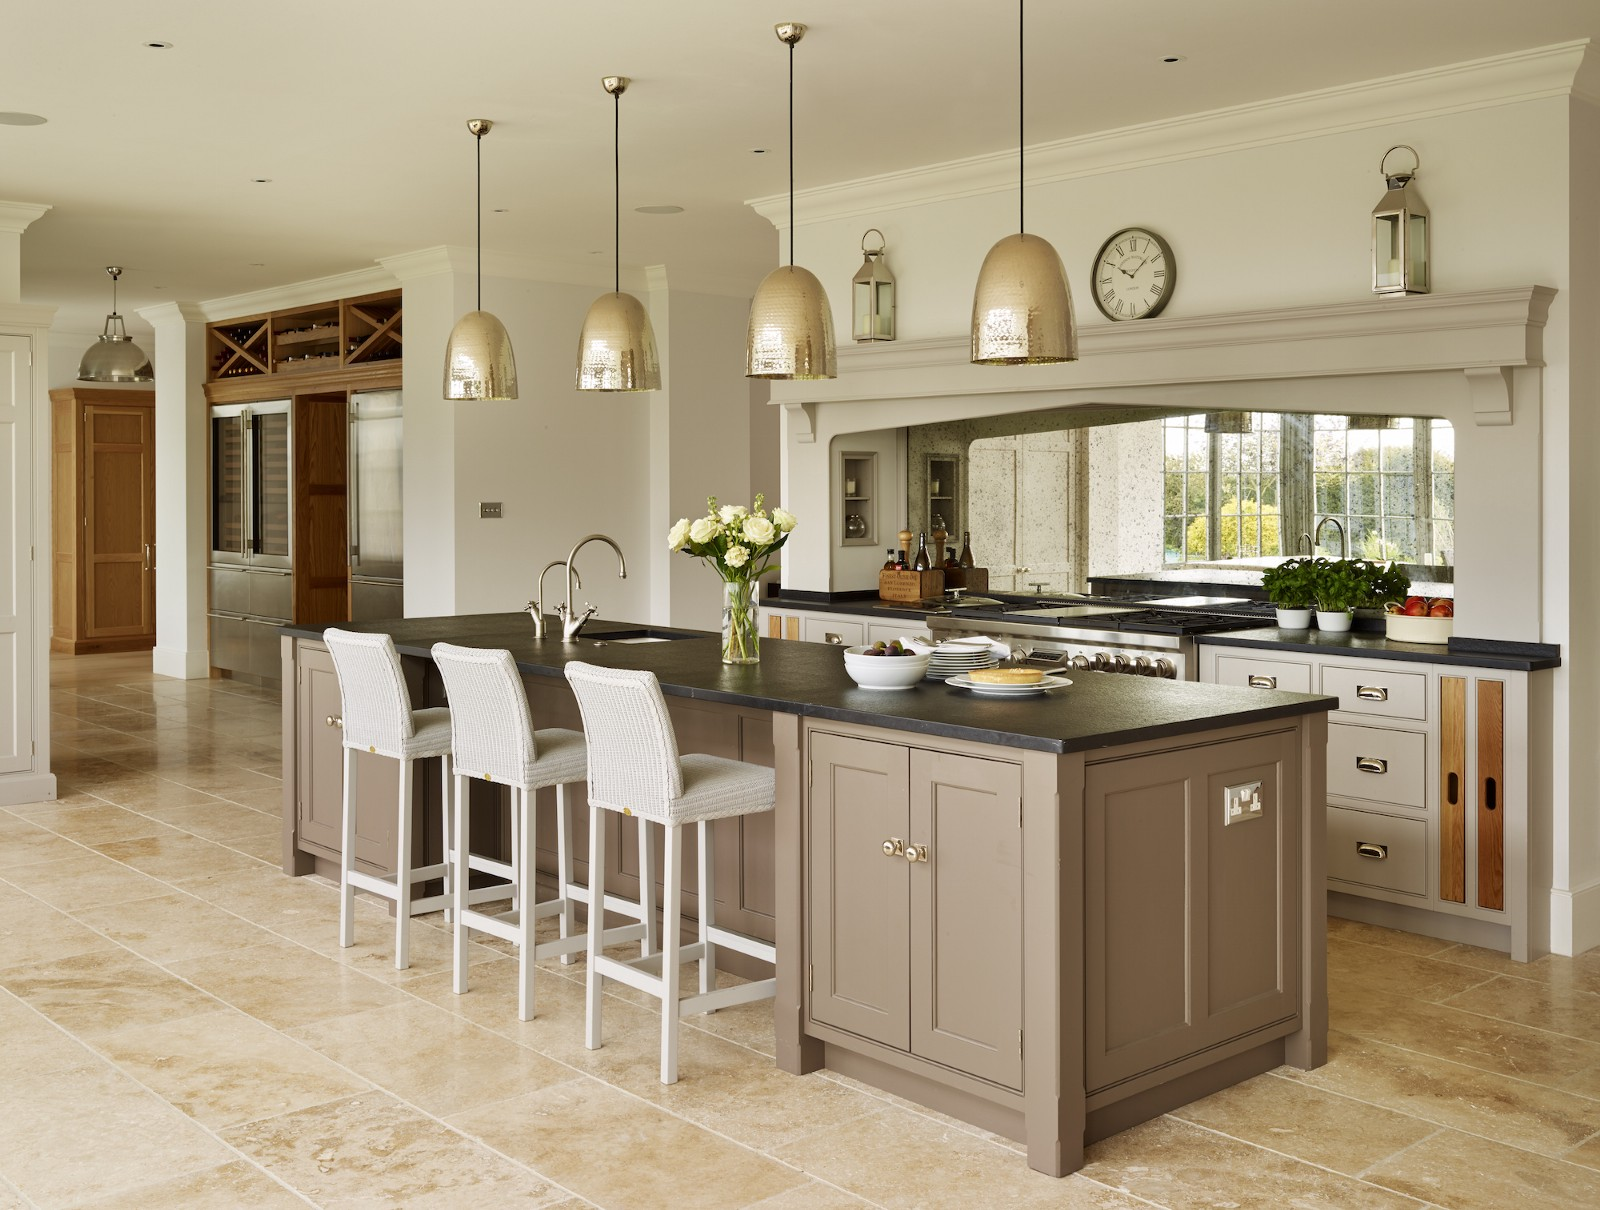 Change How Your Kitchen Looks And Feels With Latest Choices